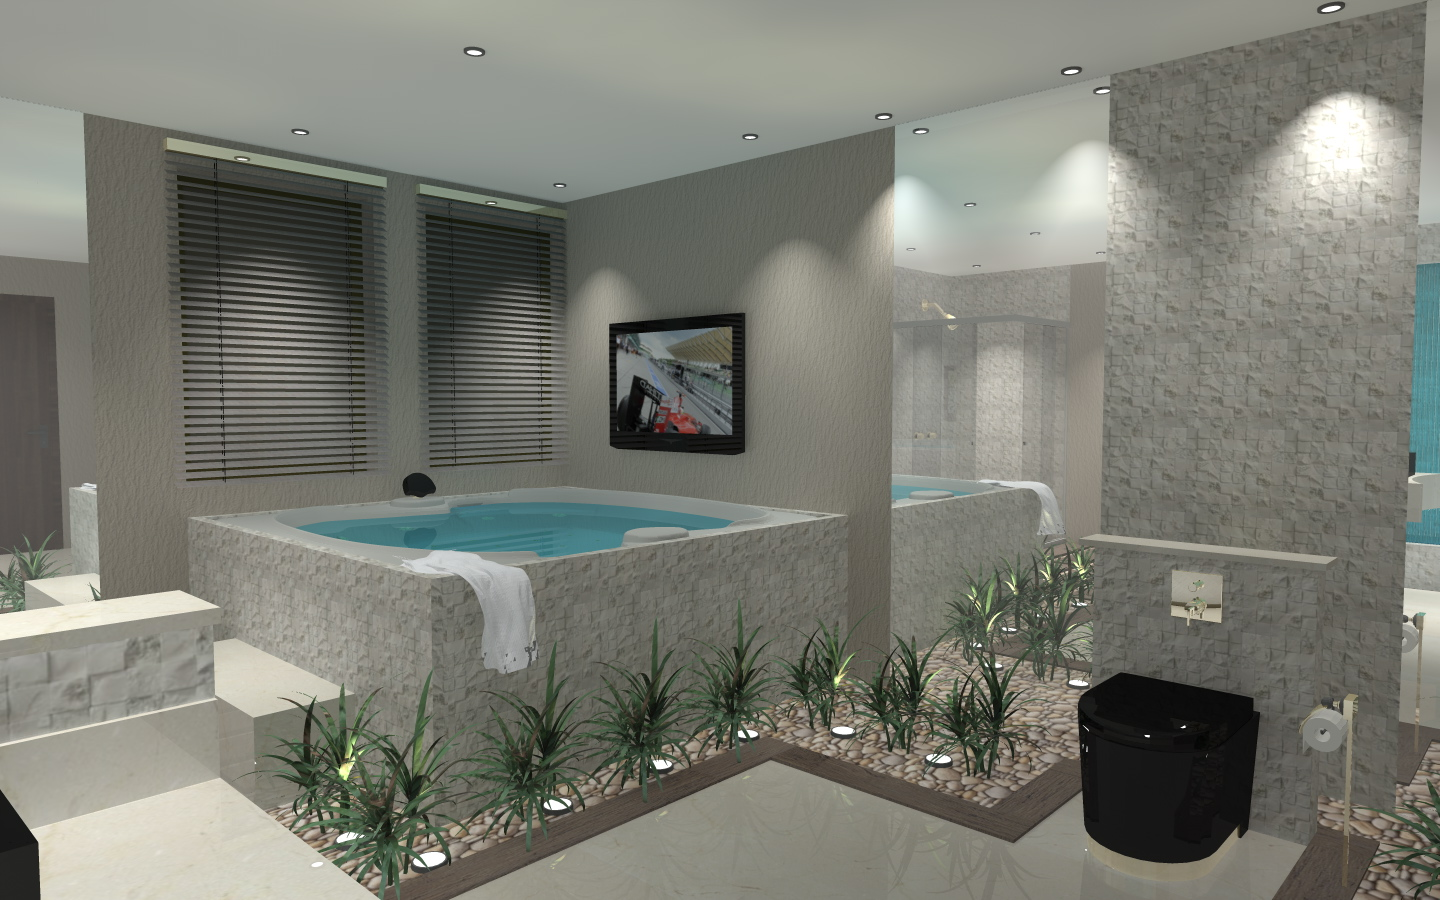 createdthis bathroom with all possible refinements virtually a SPA  #43777C 1440 900